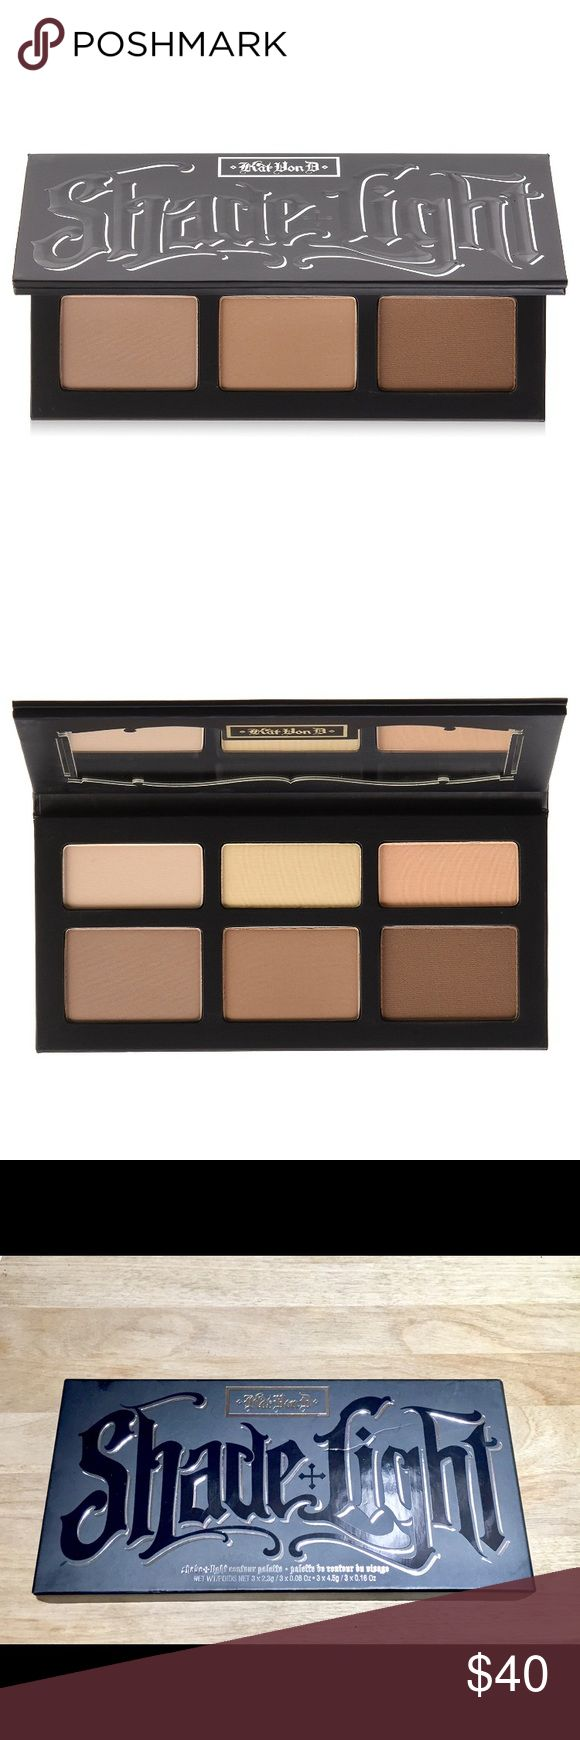 NIB Kat Von D Shade + Light Contour Palette A contour palette featuring three shades for contouring and three shades for highlighting, designed to shape and define facial features. There is a slight dent in the cover of the Palette - see photo in listing. Brand new original version, only opened to photograph. 100% Authentic   - 3 x 0.16 oz Shade powder in Sombre (true taupe), Shadowplay (soft brown), Subconscious (deep brown)  - 3 x 0.08 oz Light powder in Lucid (pinkish nude), Lyric (yellow…